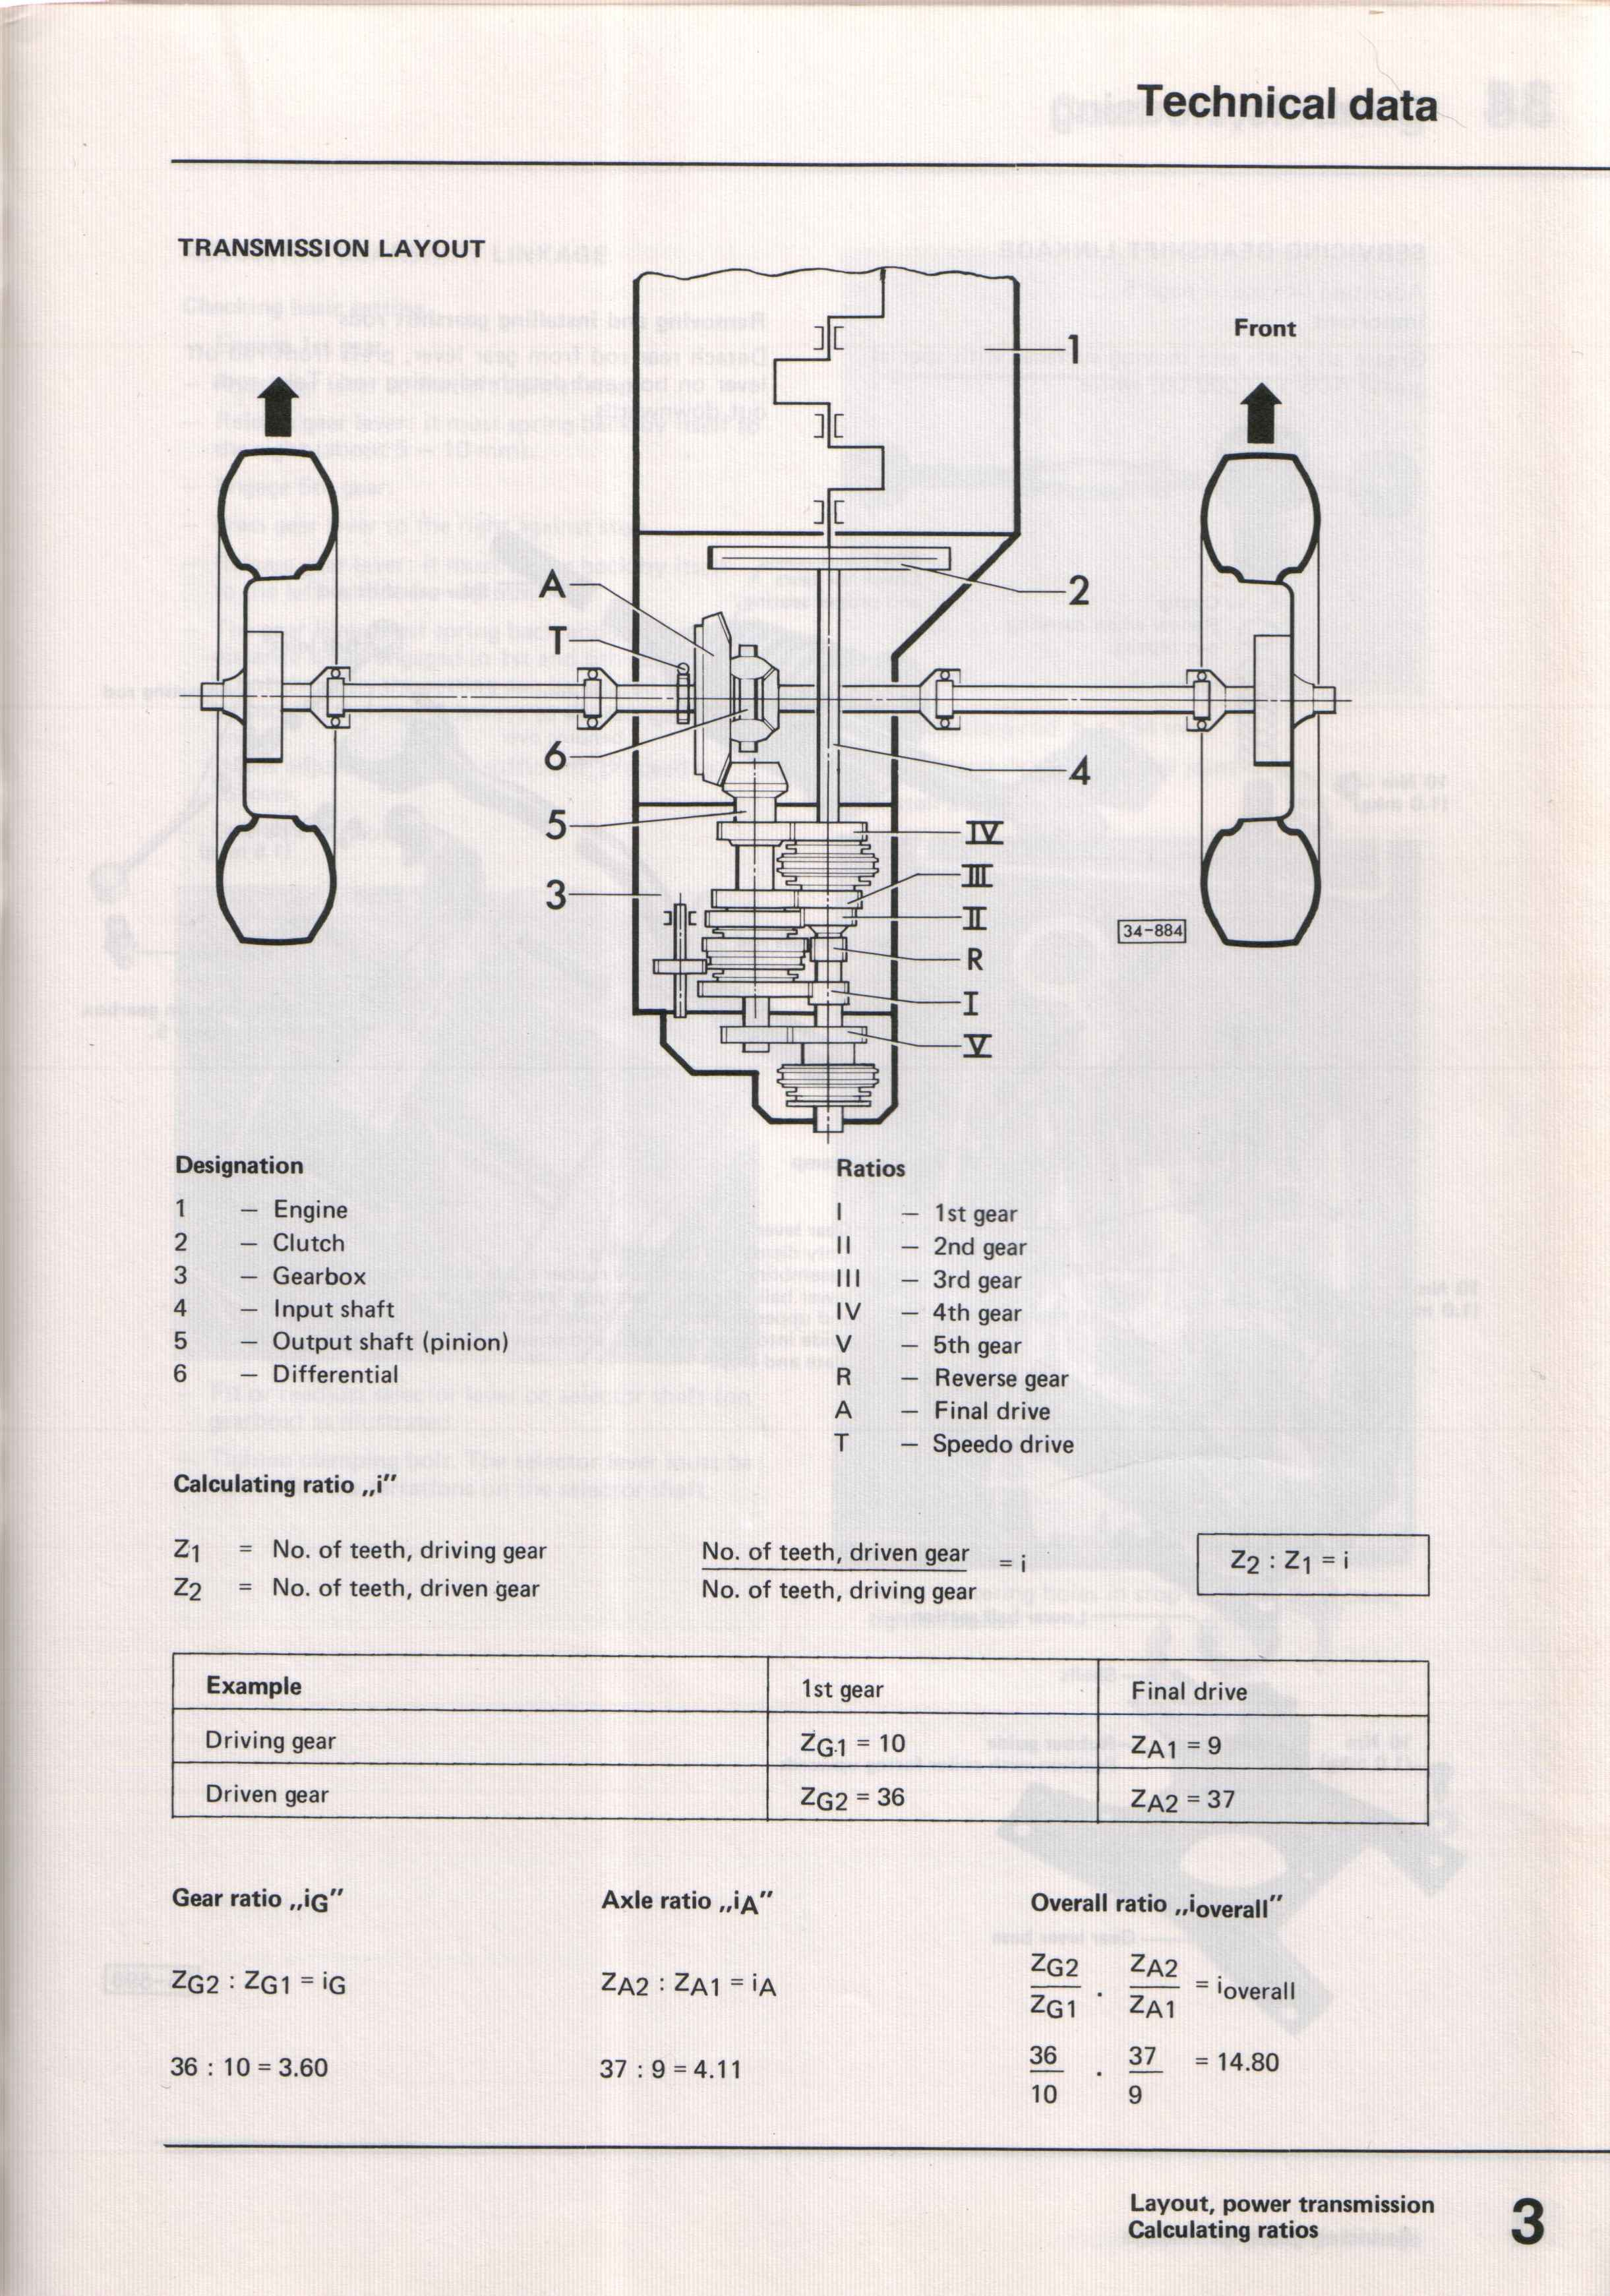 august 1979 audi 100 workshop manual for the 016 5 speed gearbox rh t85q com audi 100 c1 workshop manual audi 100 service manual